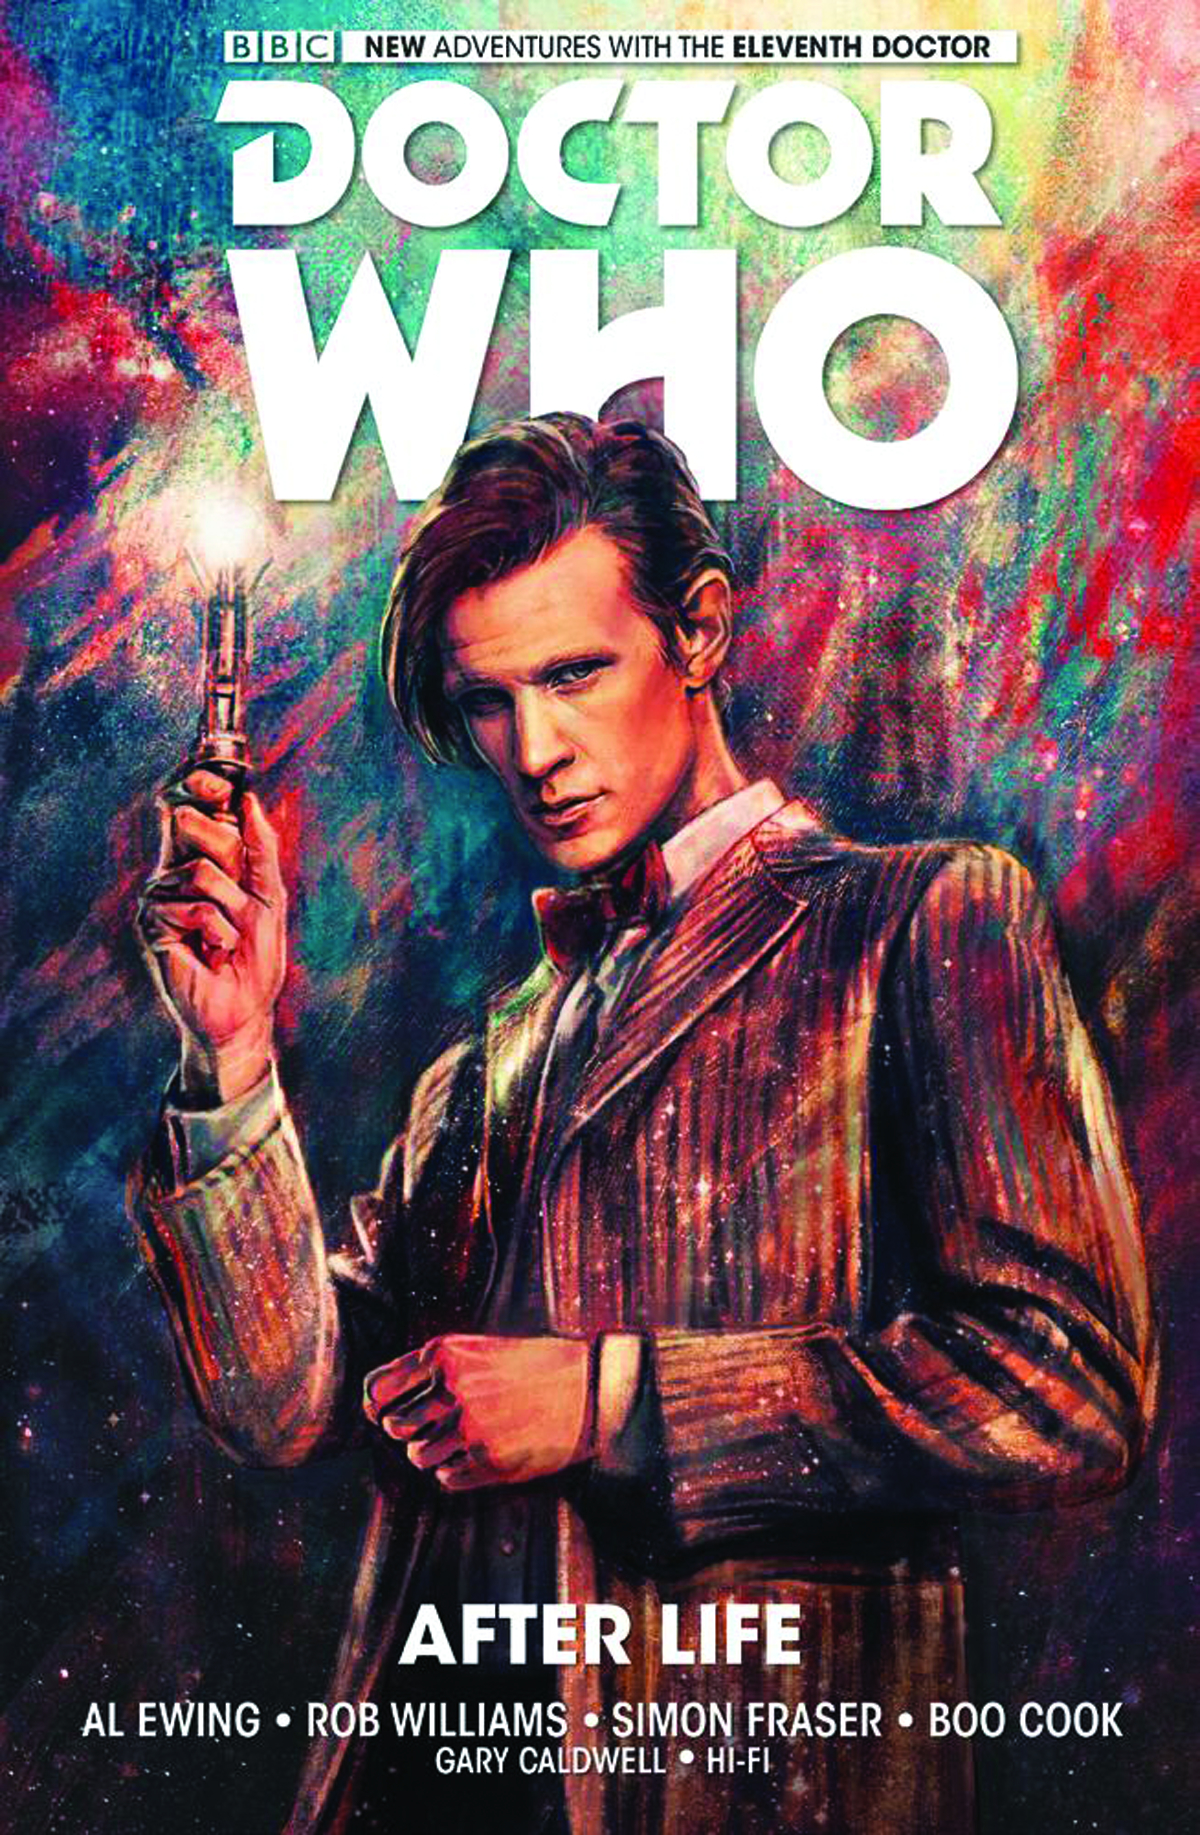 (USE APR188689) DOCTOR WHO 11TH HC VOL 01 AFTER LIFE